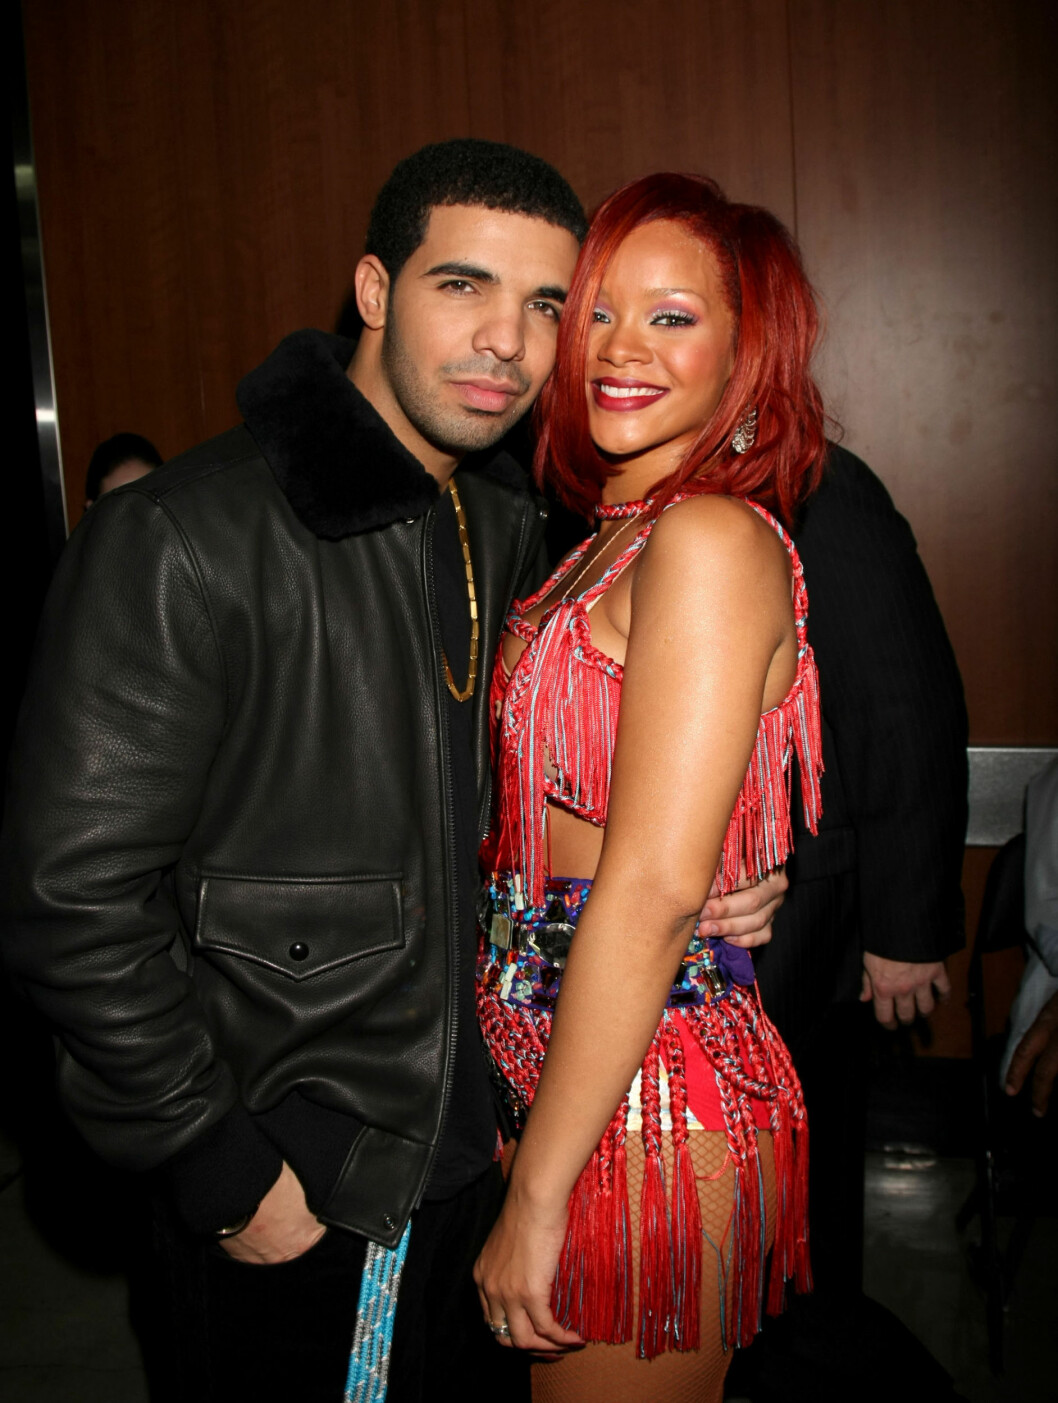 <strong>GODE VENNER:</strong> Rapperen Drake og sangeren Rihanna slapper av backstage på Grammy-festen. Foto: All Over Press